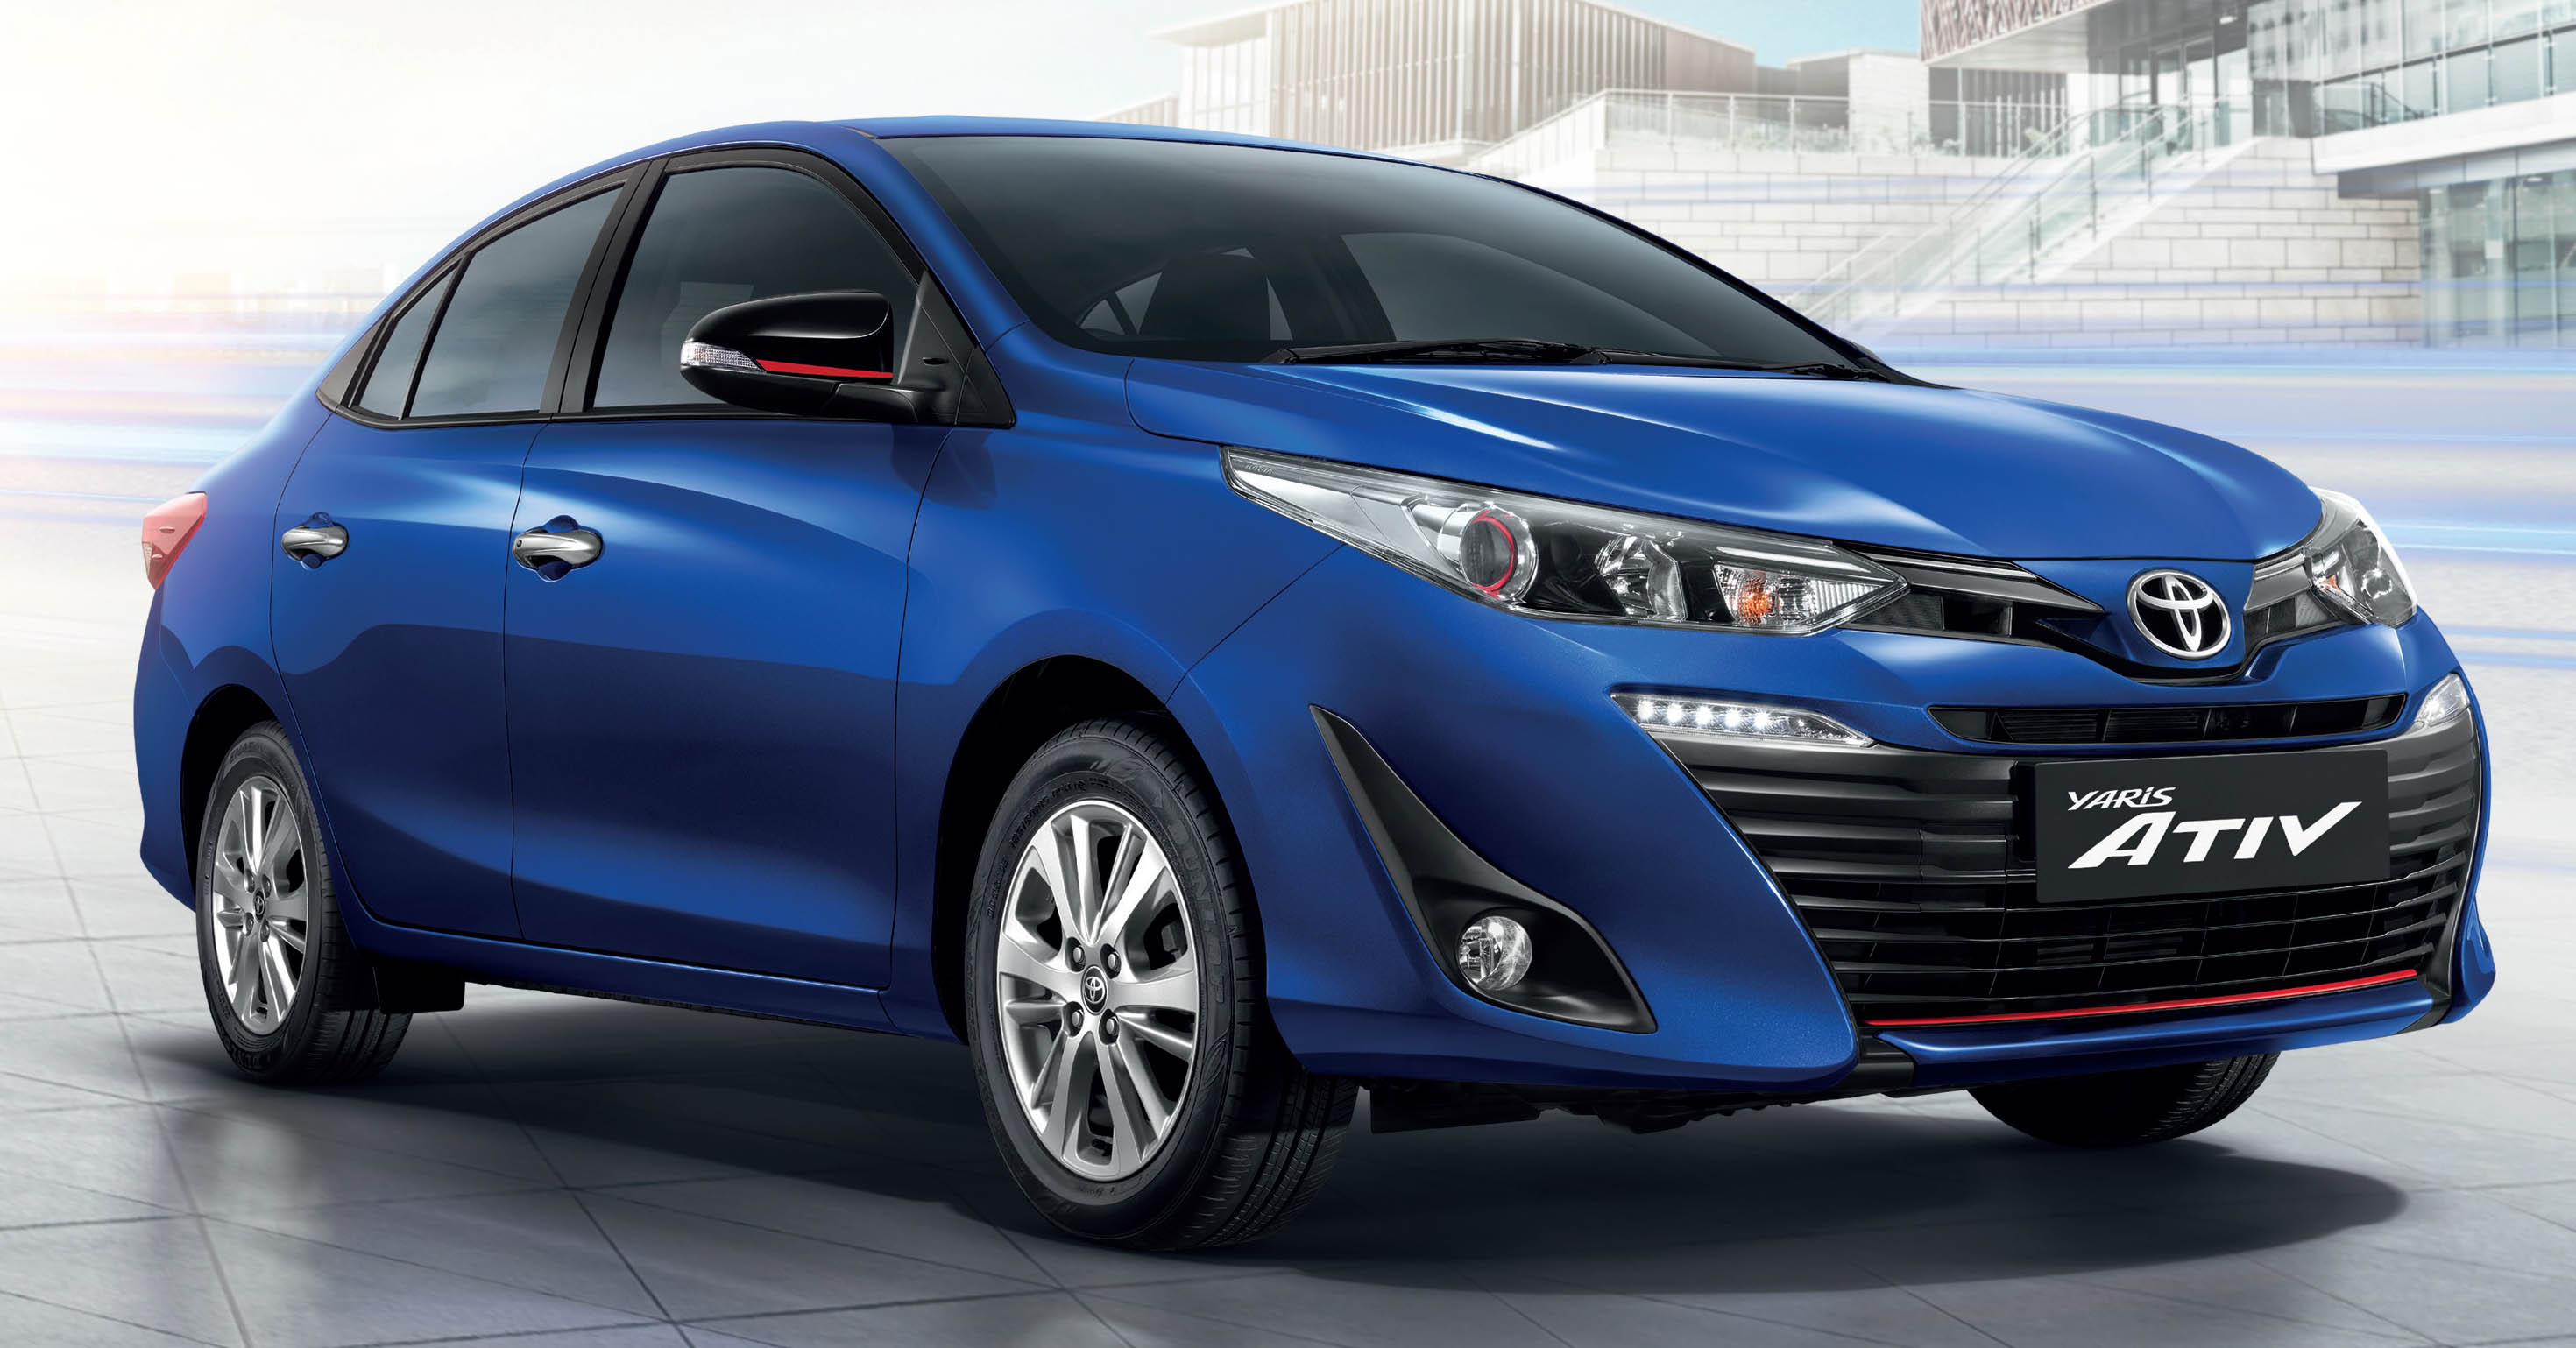 New Toyota Yaris Ativ launched in Thailand – 1.2L, 7 airbags standard, priced from 469k baht ...